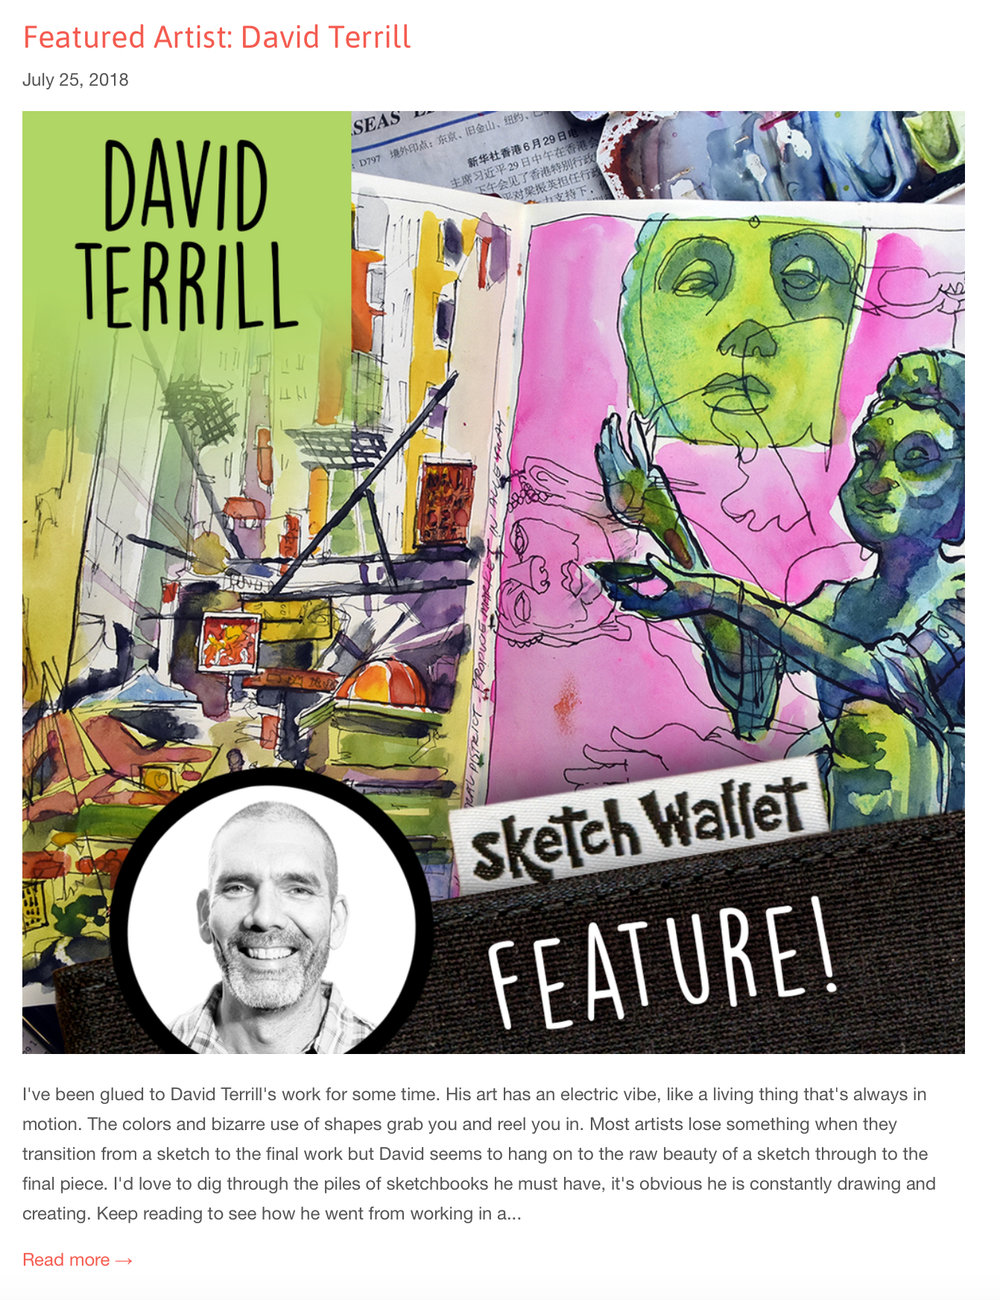 terrill_sketchwallet_interview.jpg